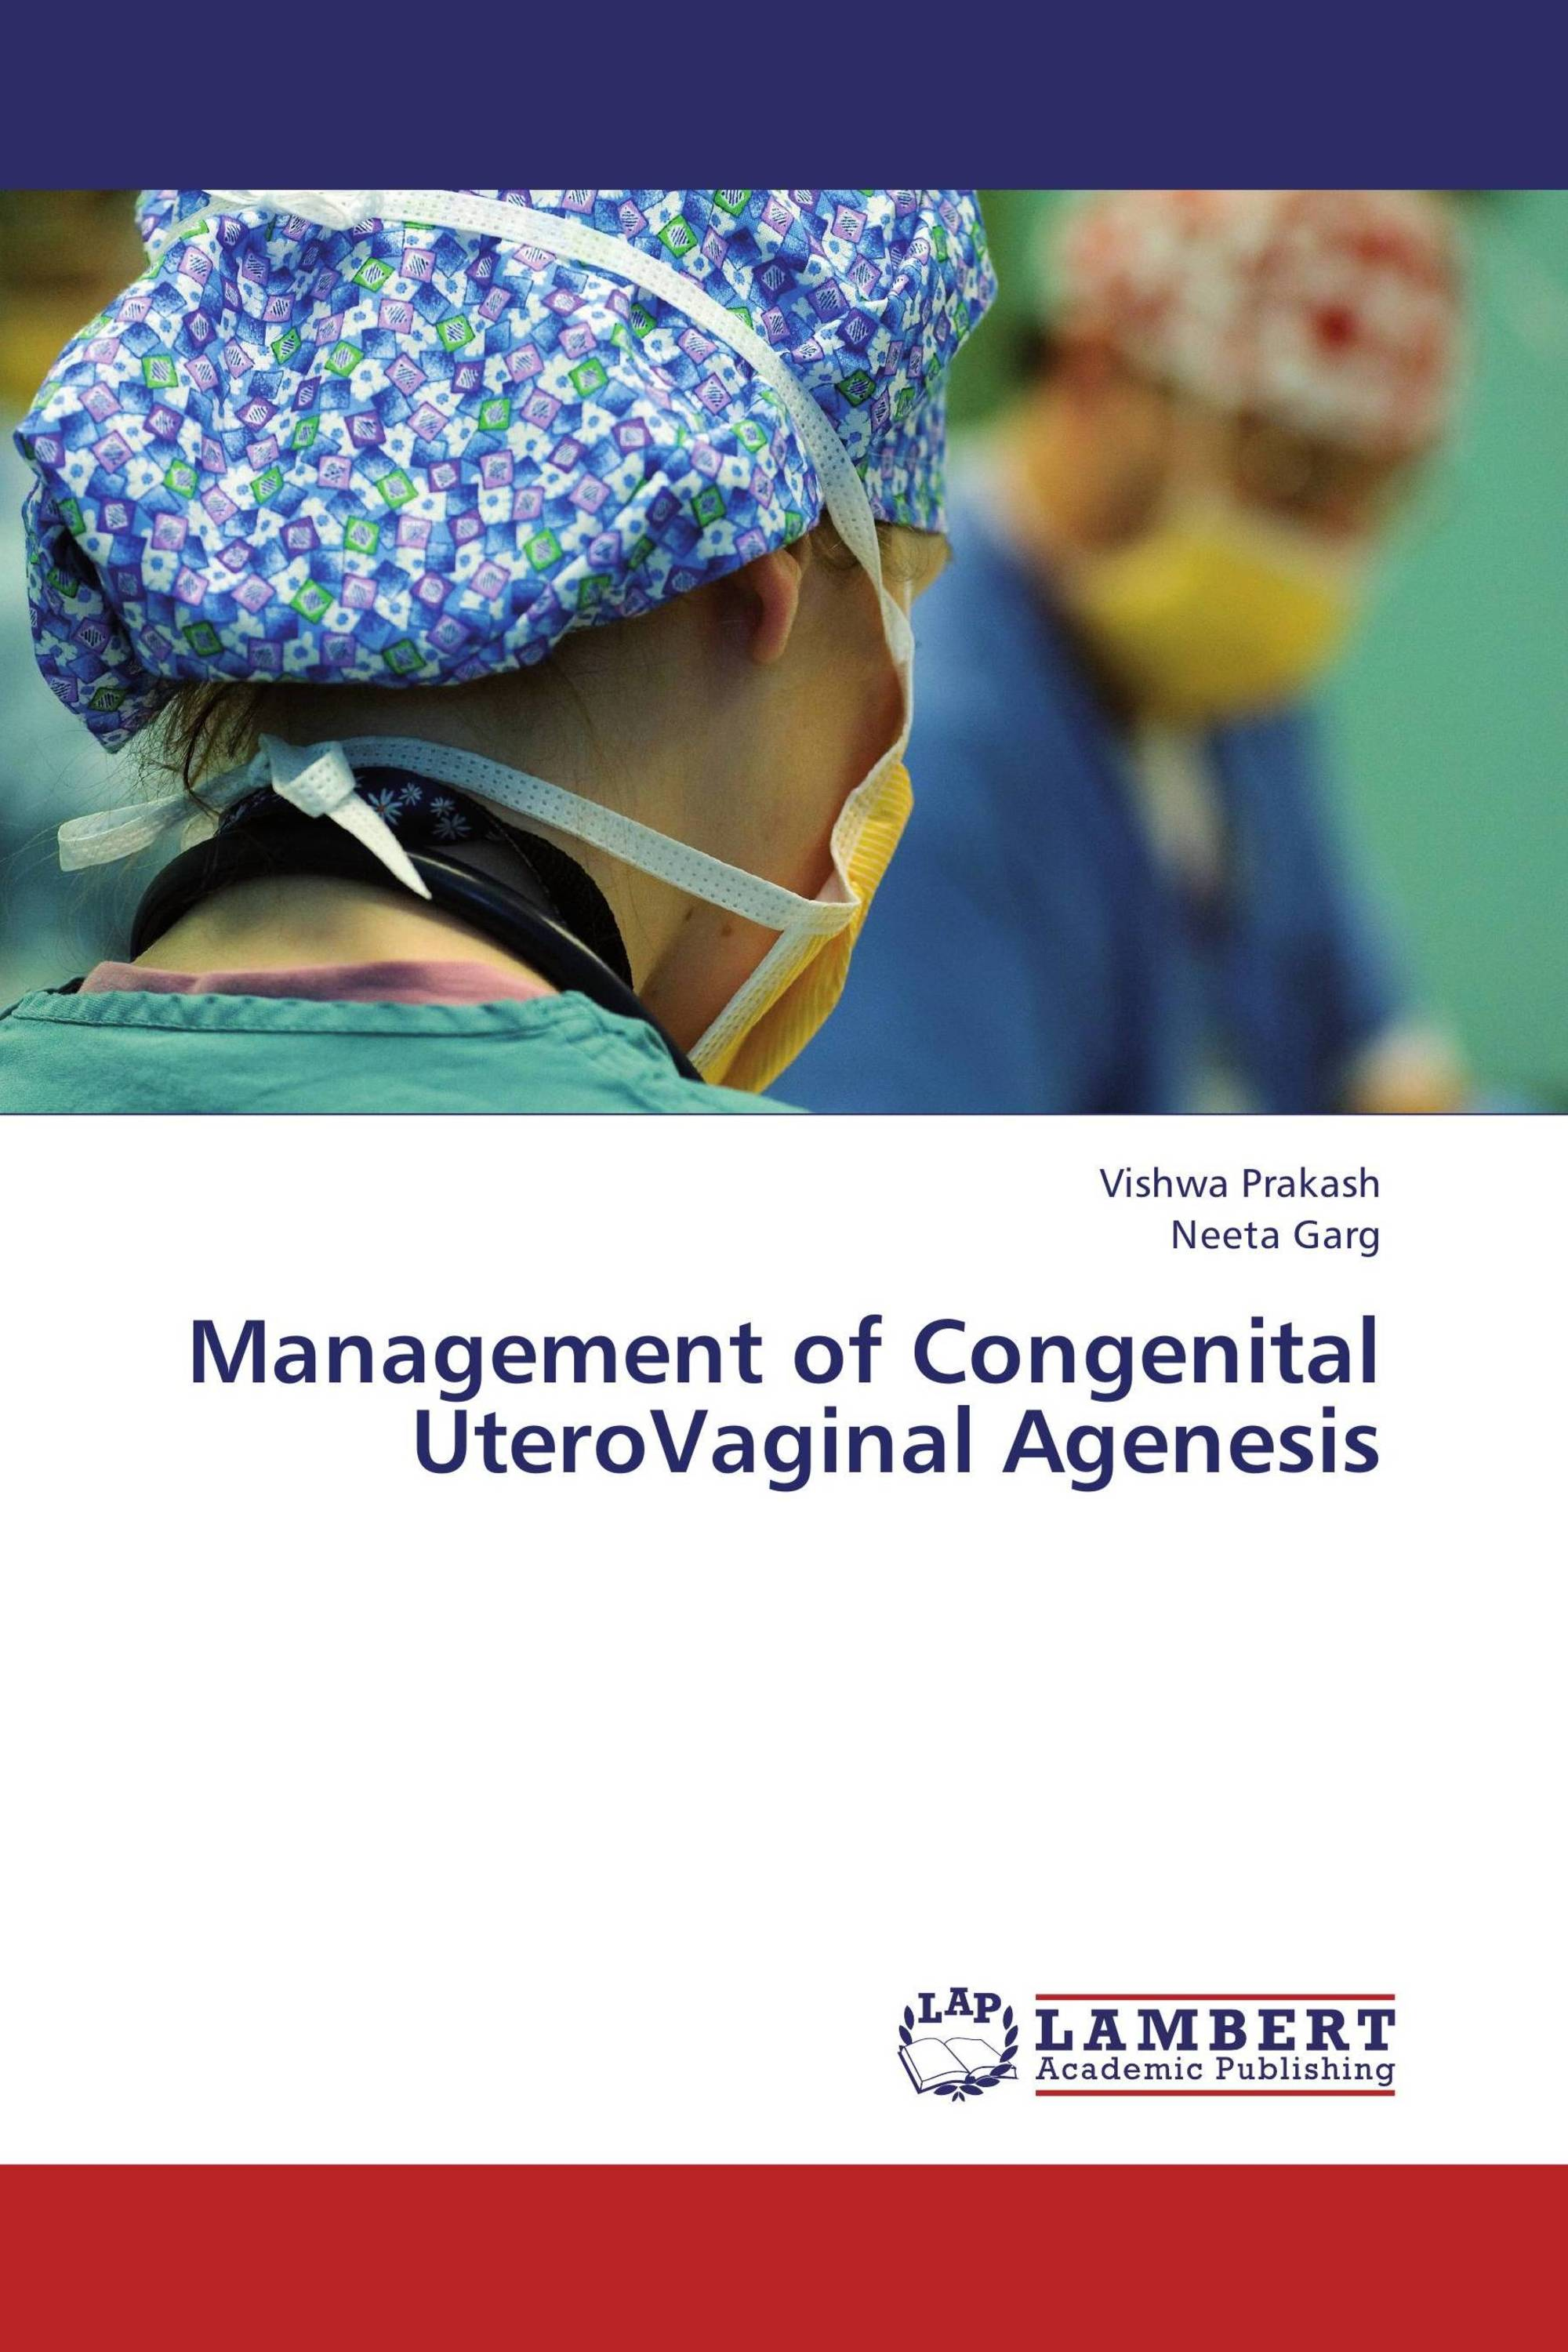 Management of Congenital UteroVaginal Agenesis